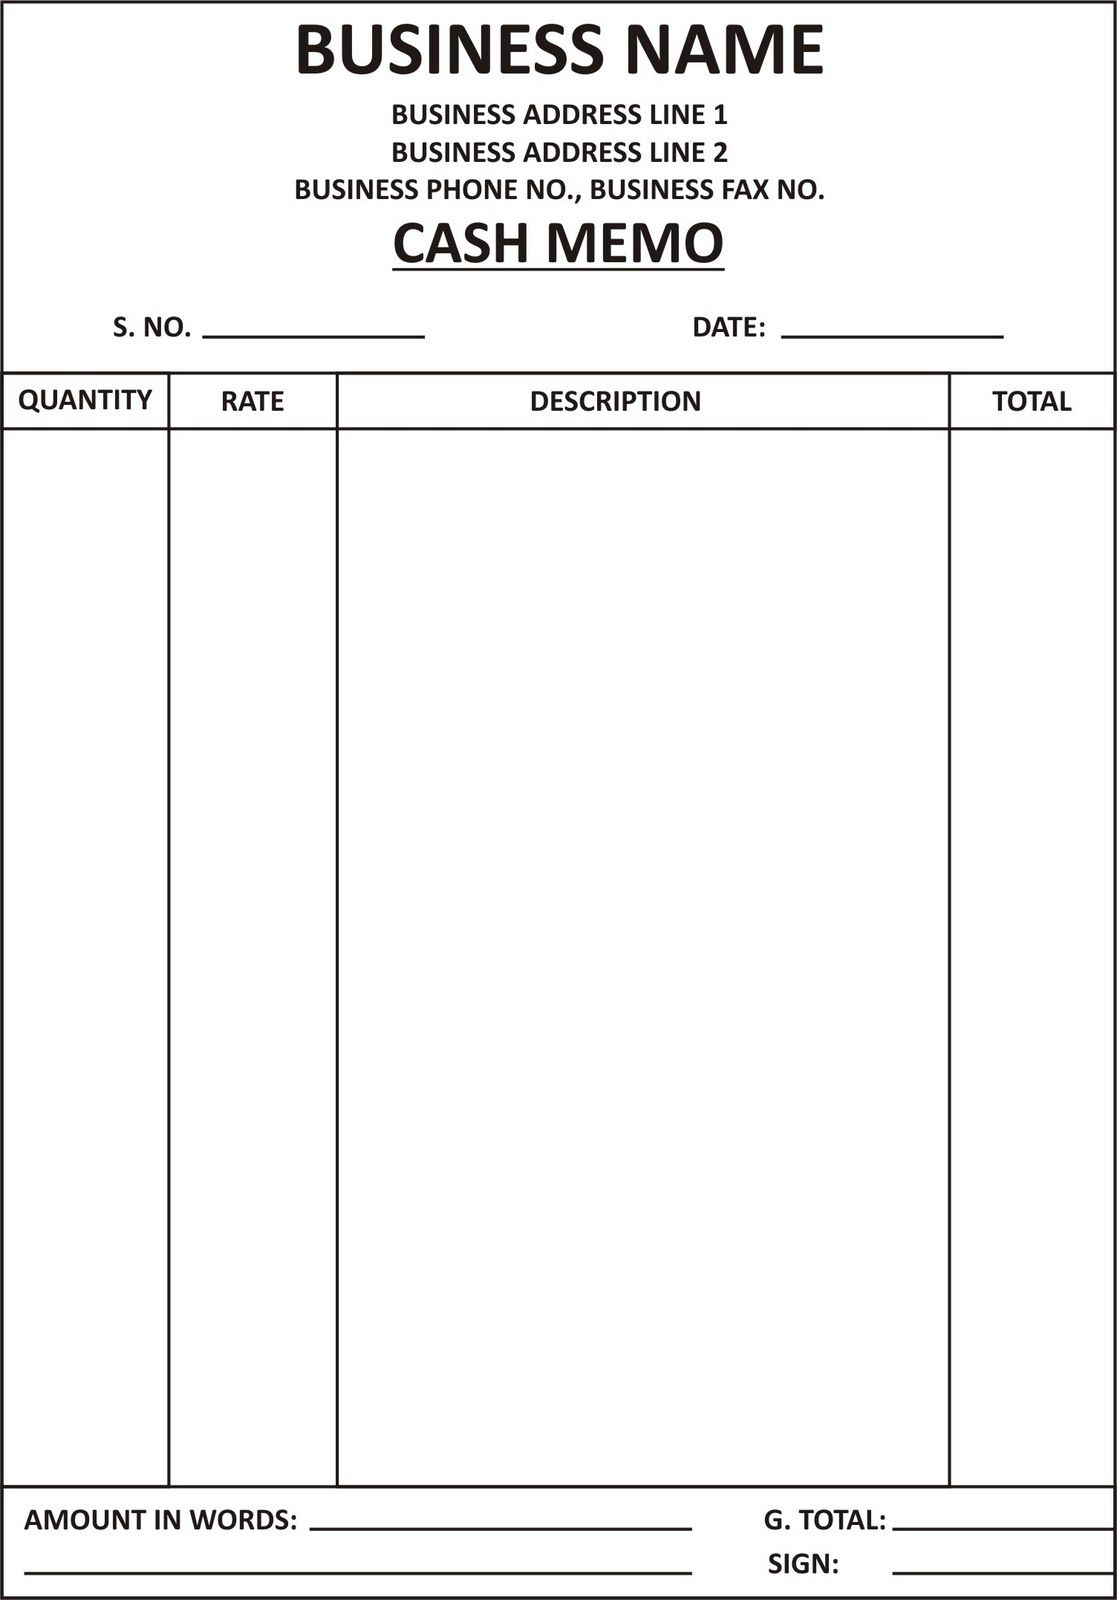 Cash Bill Format Submited Images Pic Fly Al Pinterest Products - Free business invoice templates word vapor store online